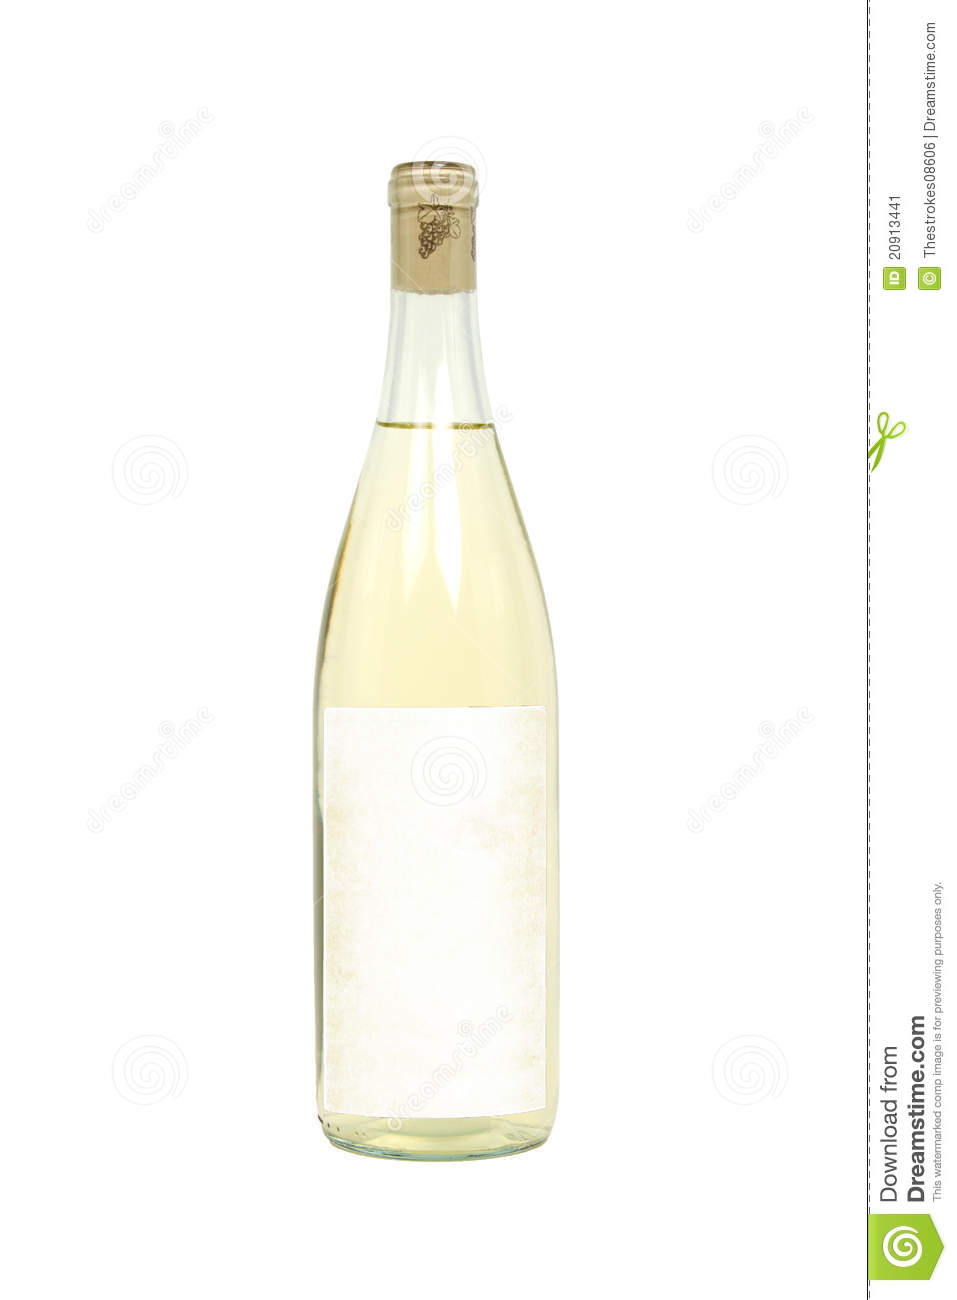 Bottle of White Wine with Blank Label Isolated on a White Background.